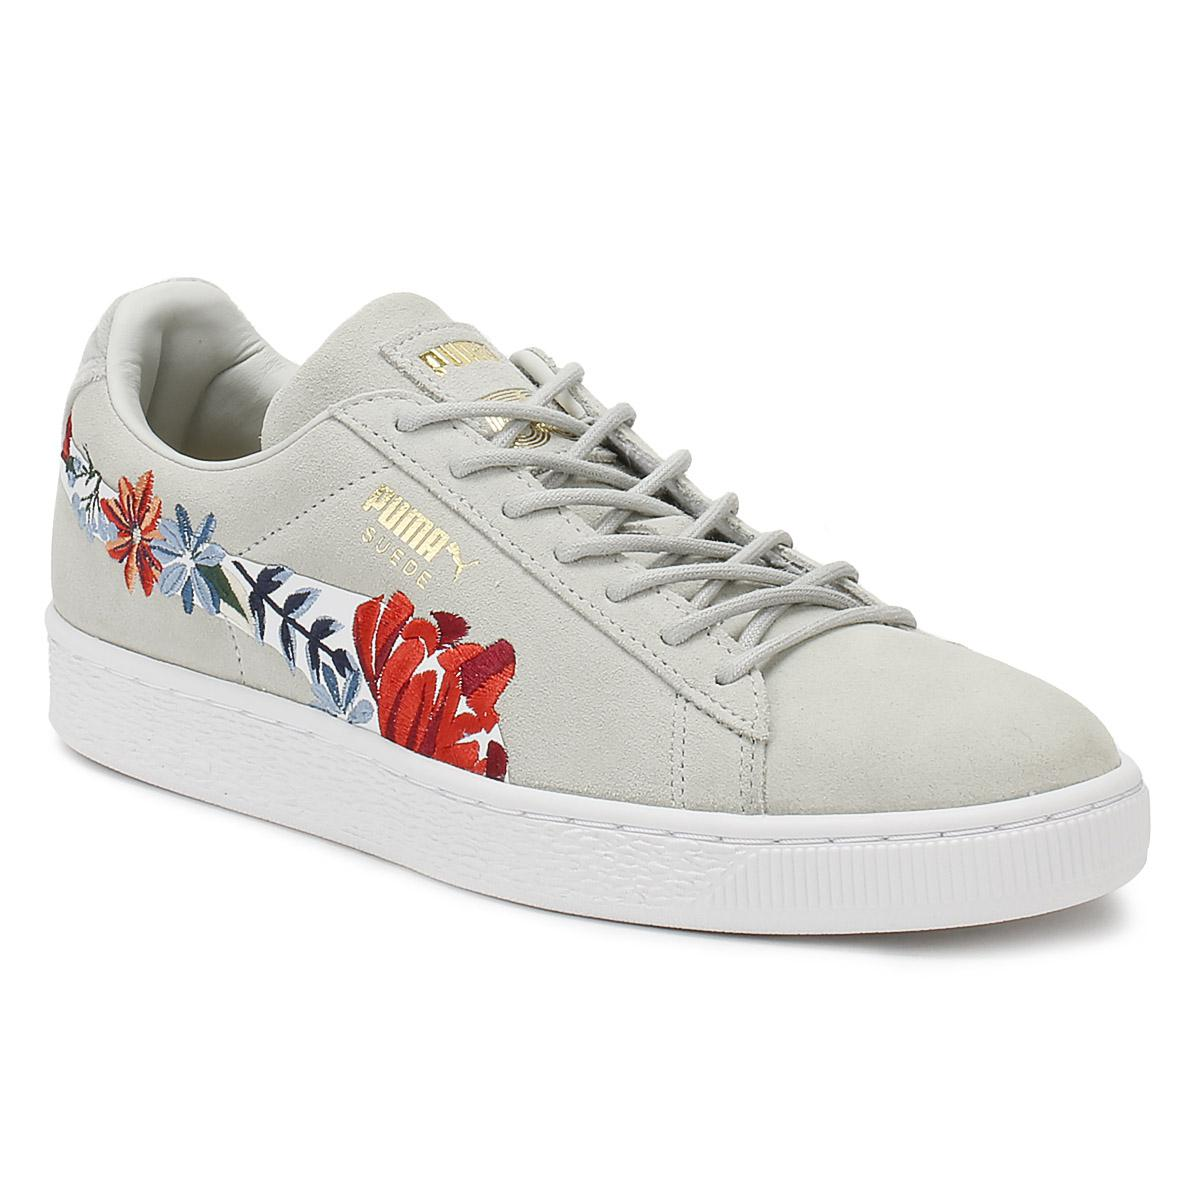 6d7f0b797ce PUMA. Gray Womens Glacier Grey Suede Classic Embroidery Trainers